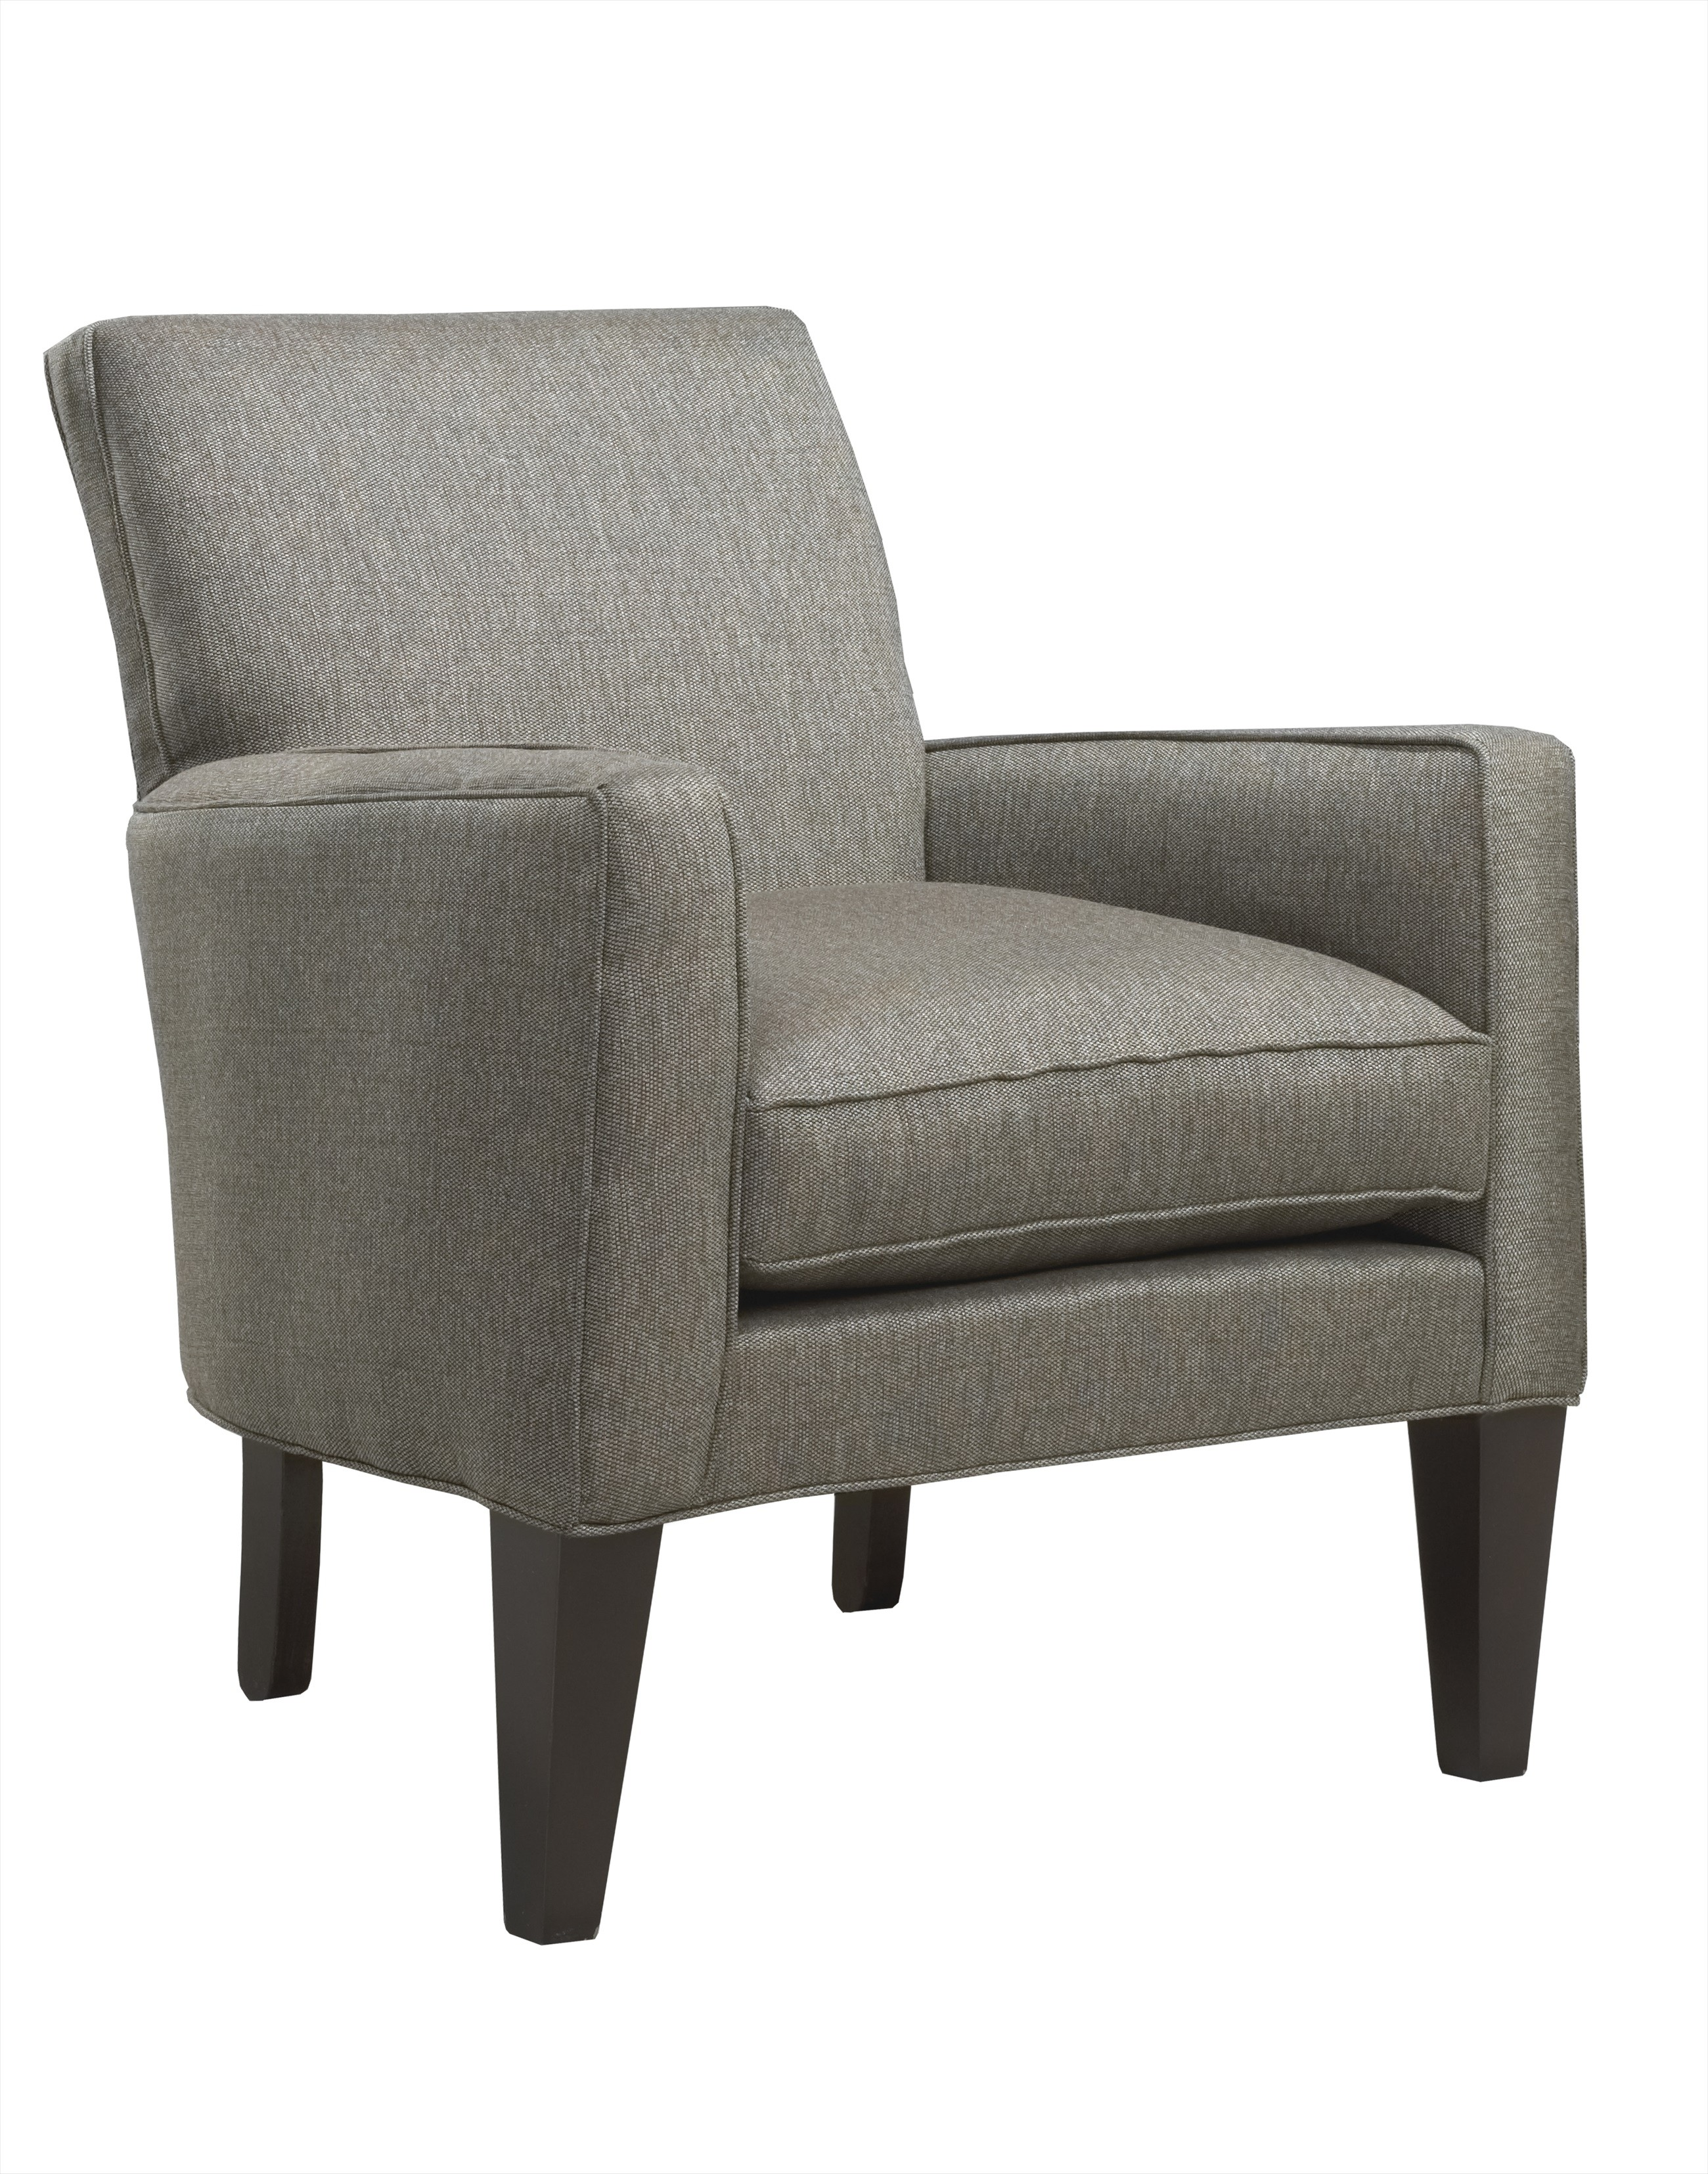 Comfy Accent Chair For Home Furniture Ideas With Accent Chairs With Arms And Accent Chairs For Living Room